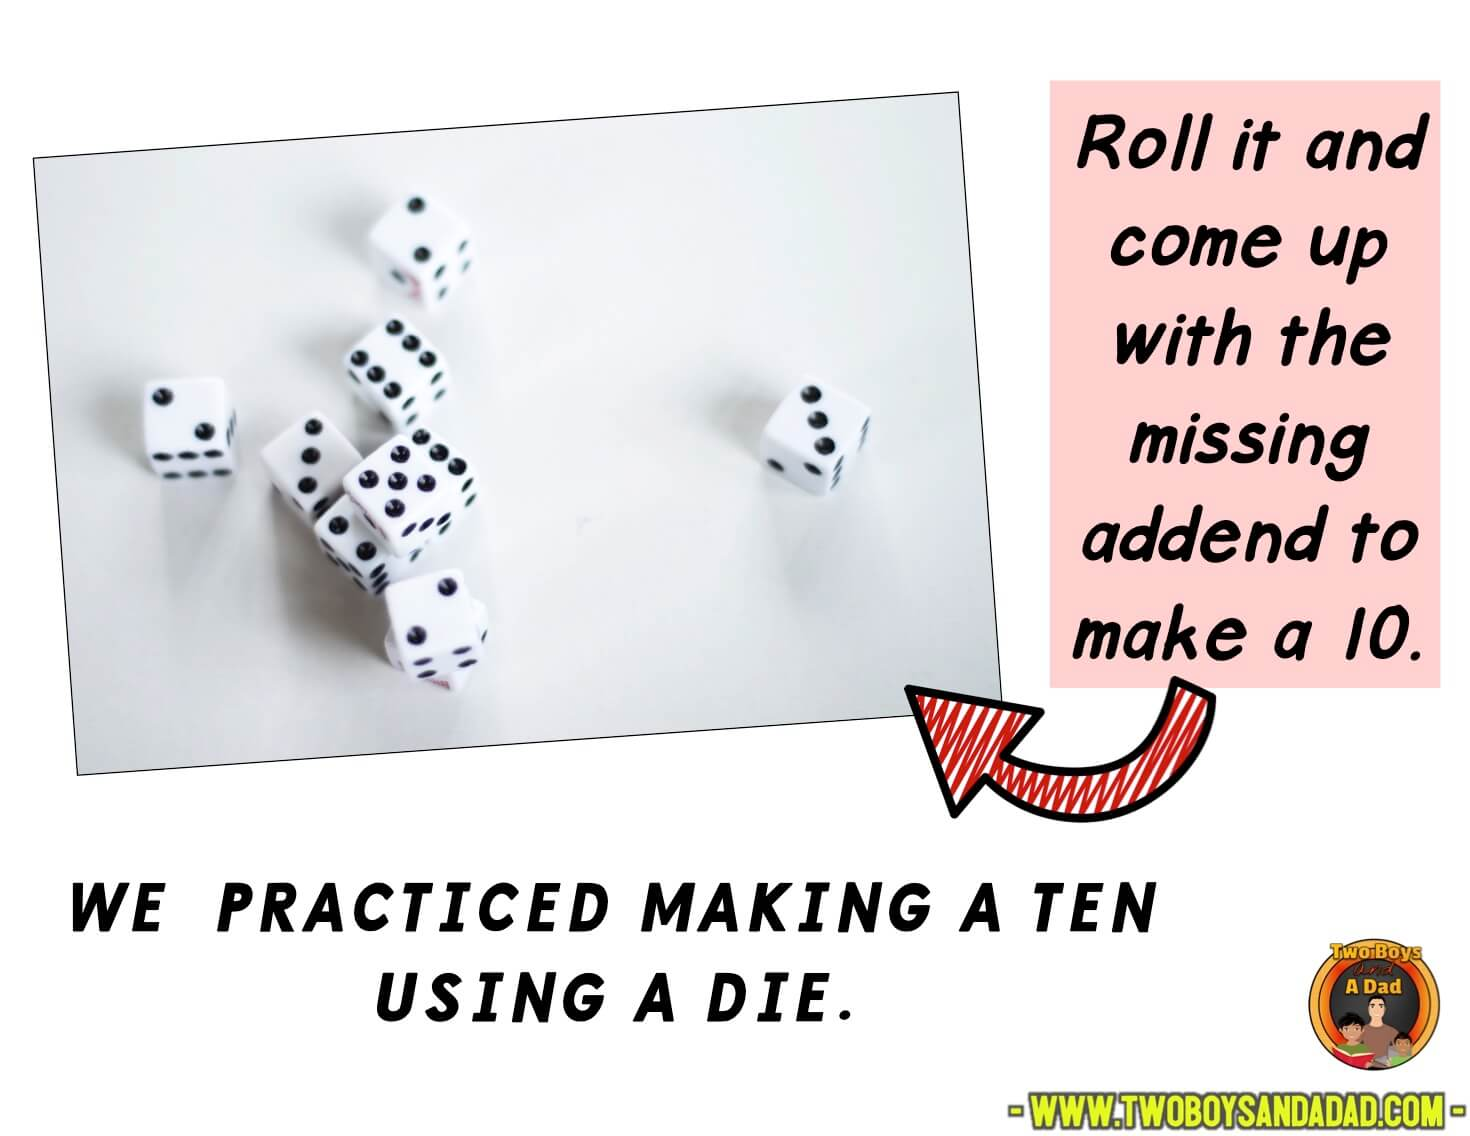 Roll dice game to make a ten